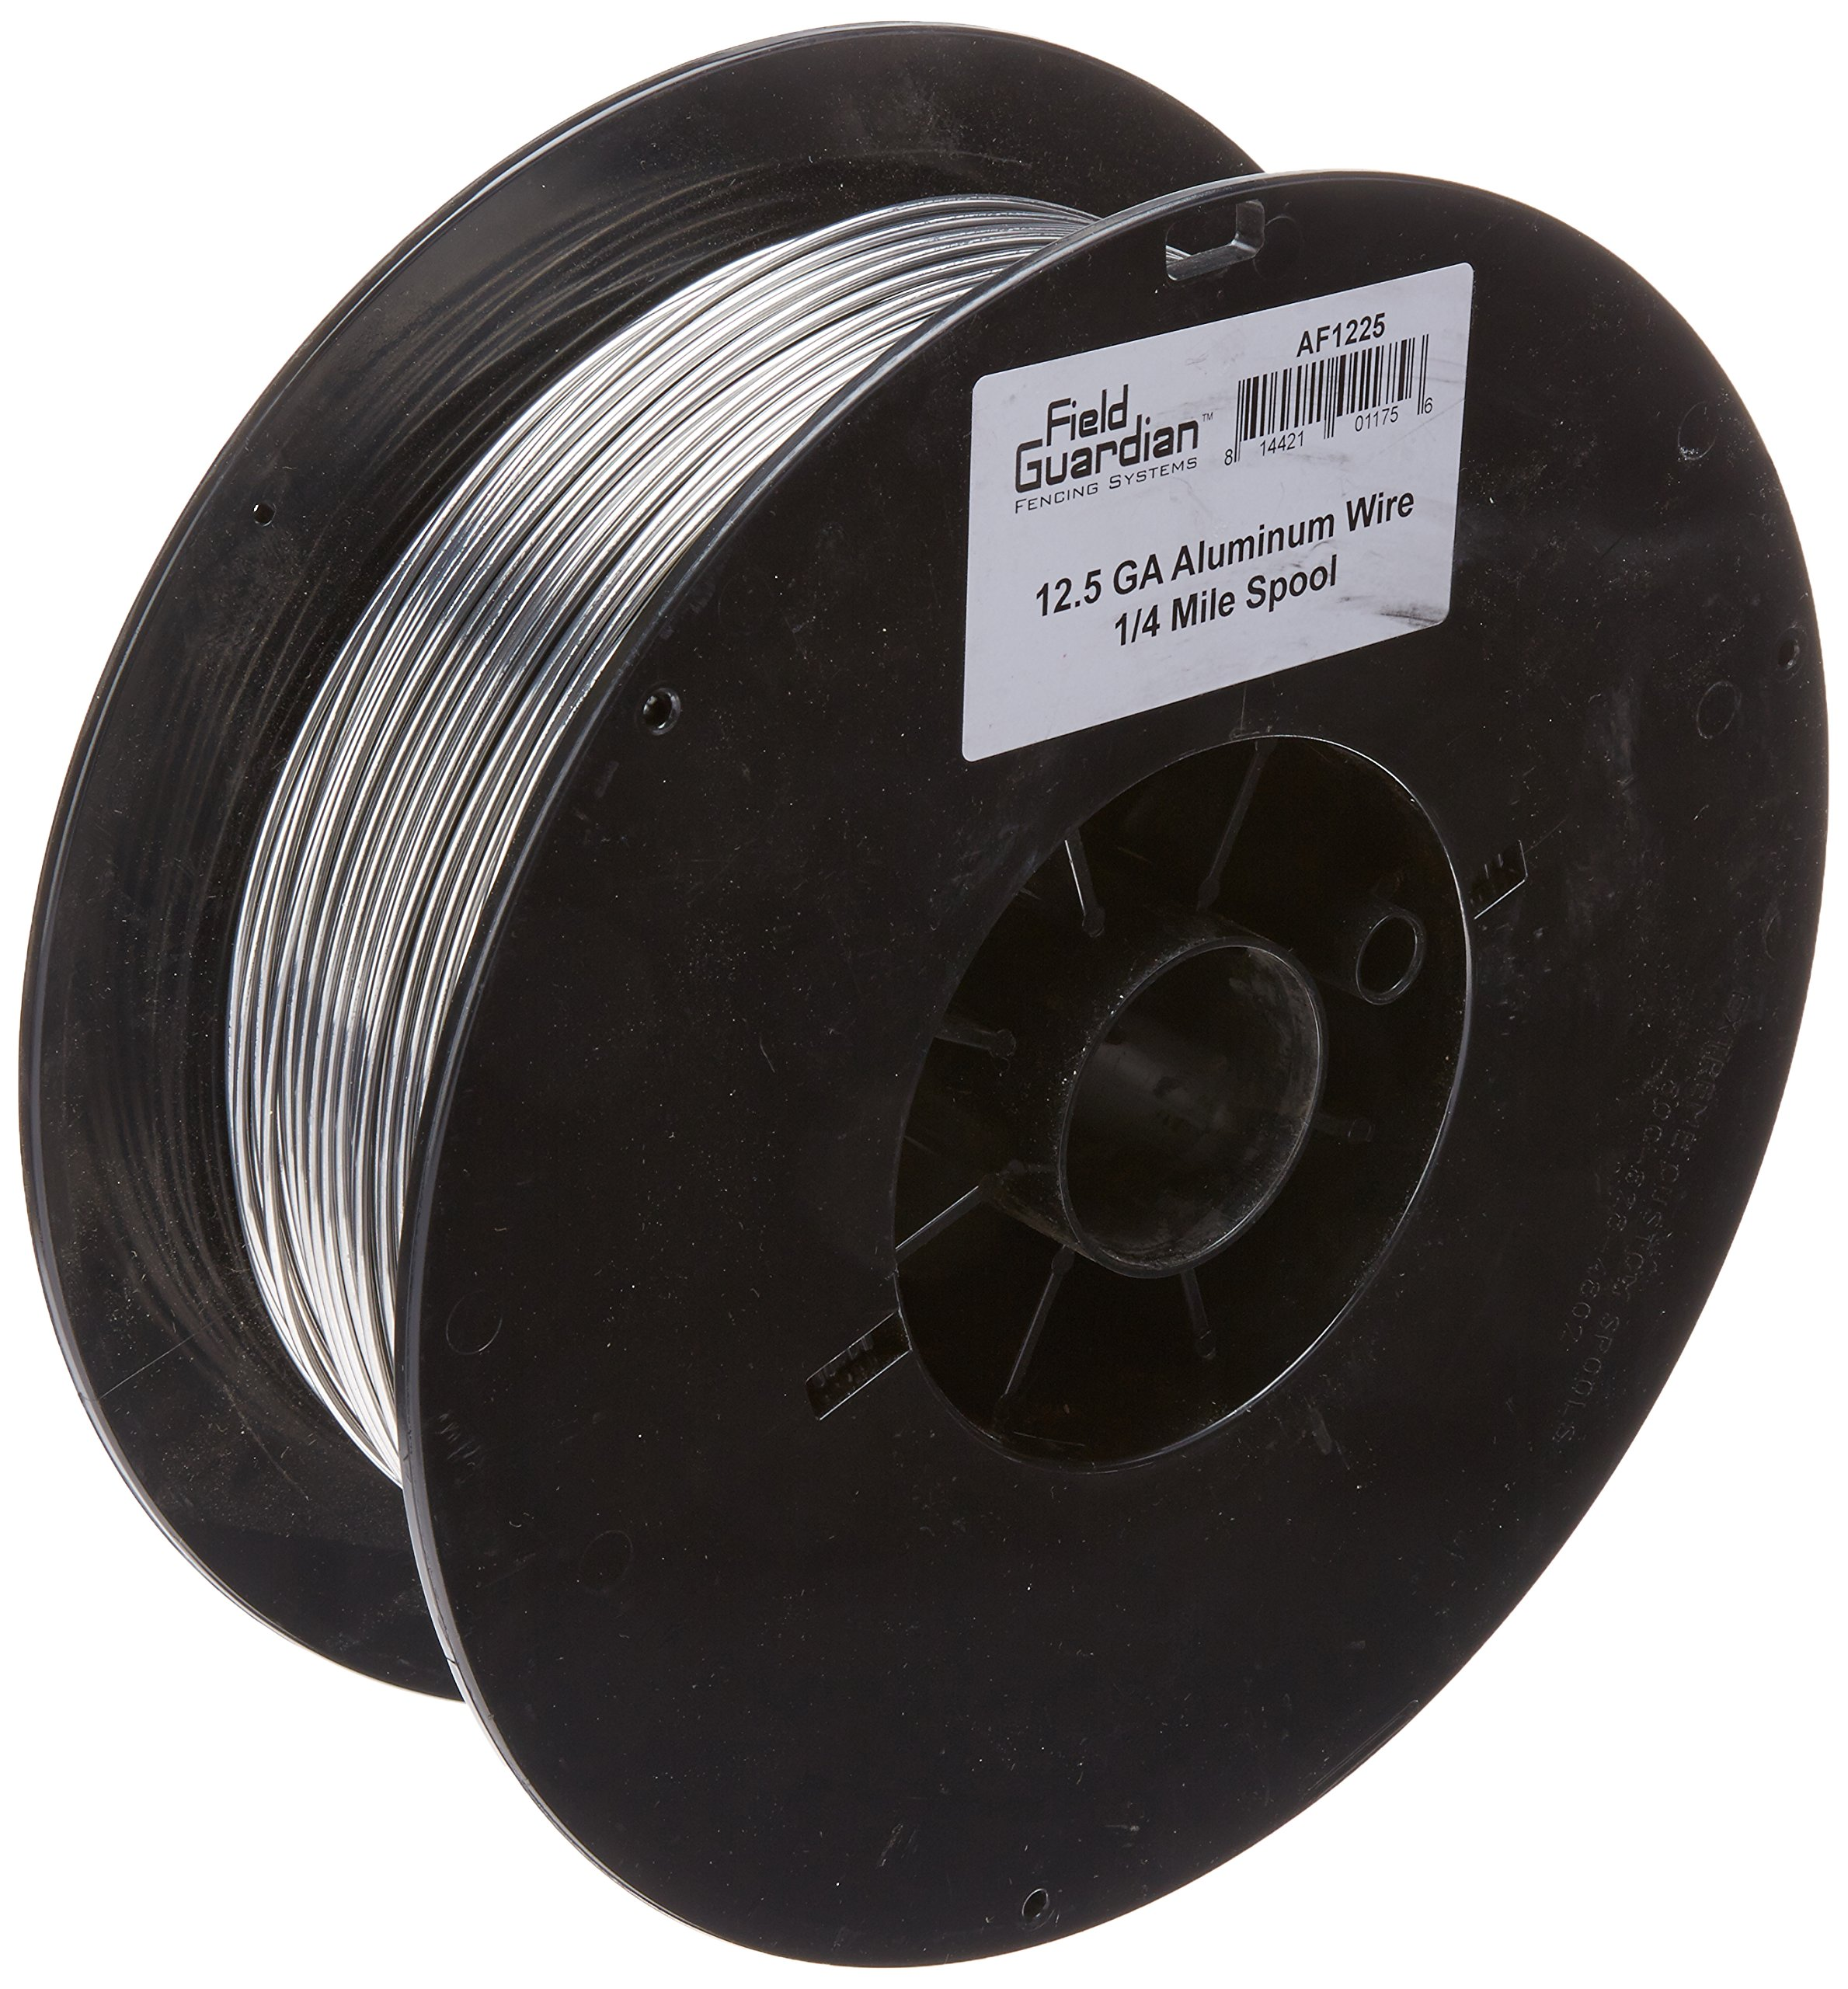 Field Guardian 12-1/2-Guage Aluminum Wire, 1/4 Miles by Field Guardian